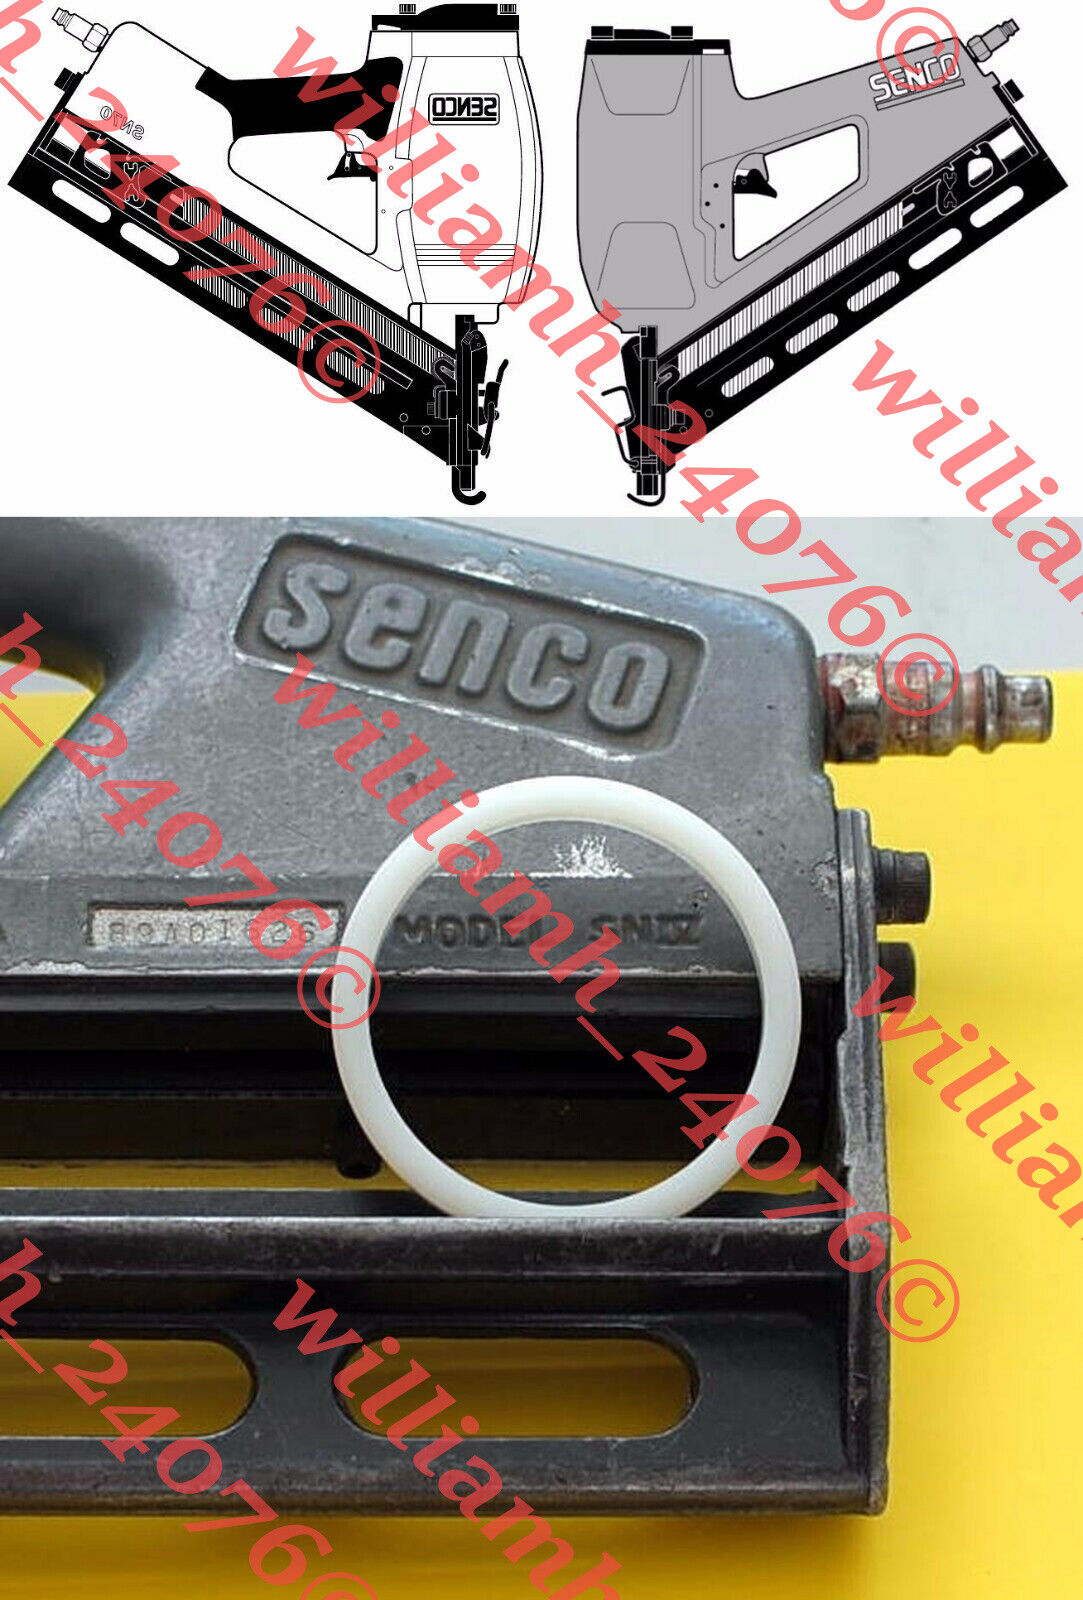 Senco Framing Nailer SN4 SN70 Washer Firing Valve Seal LB350